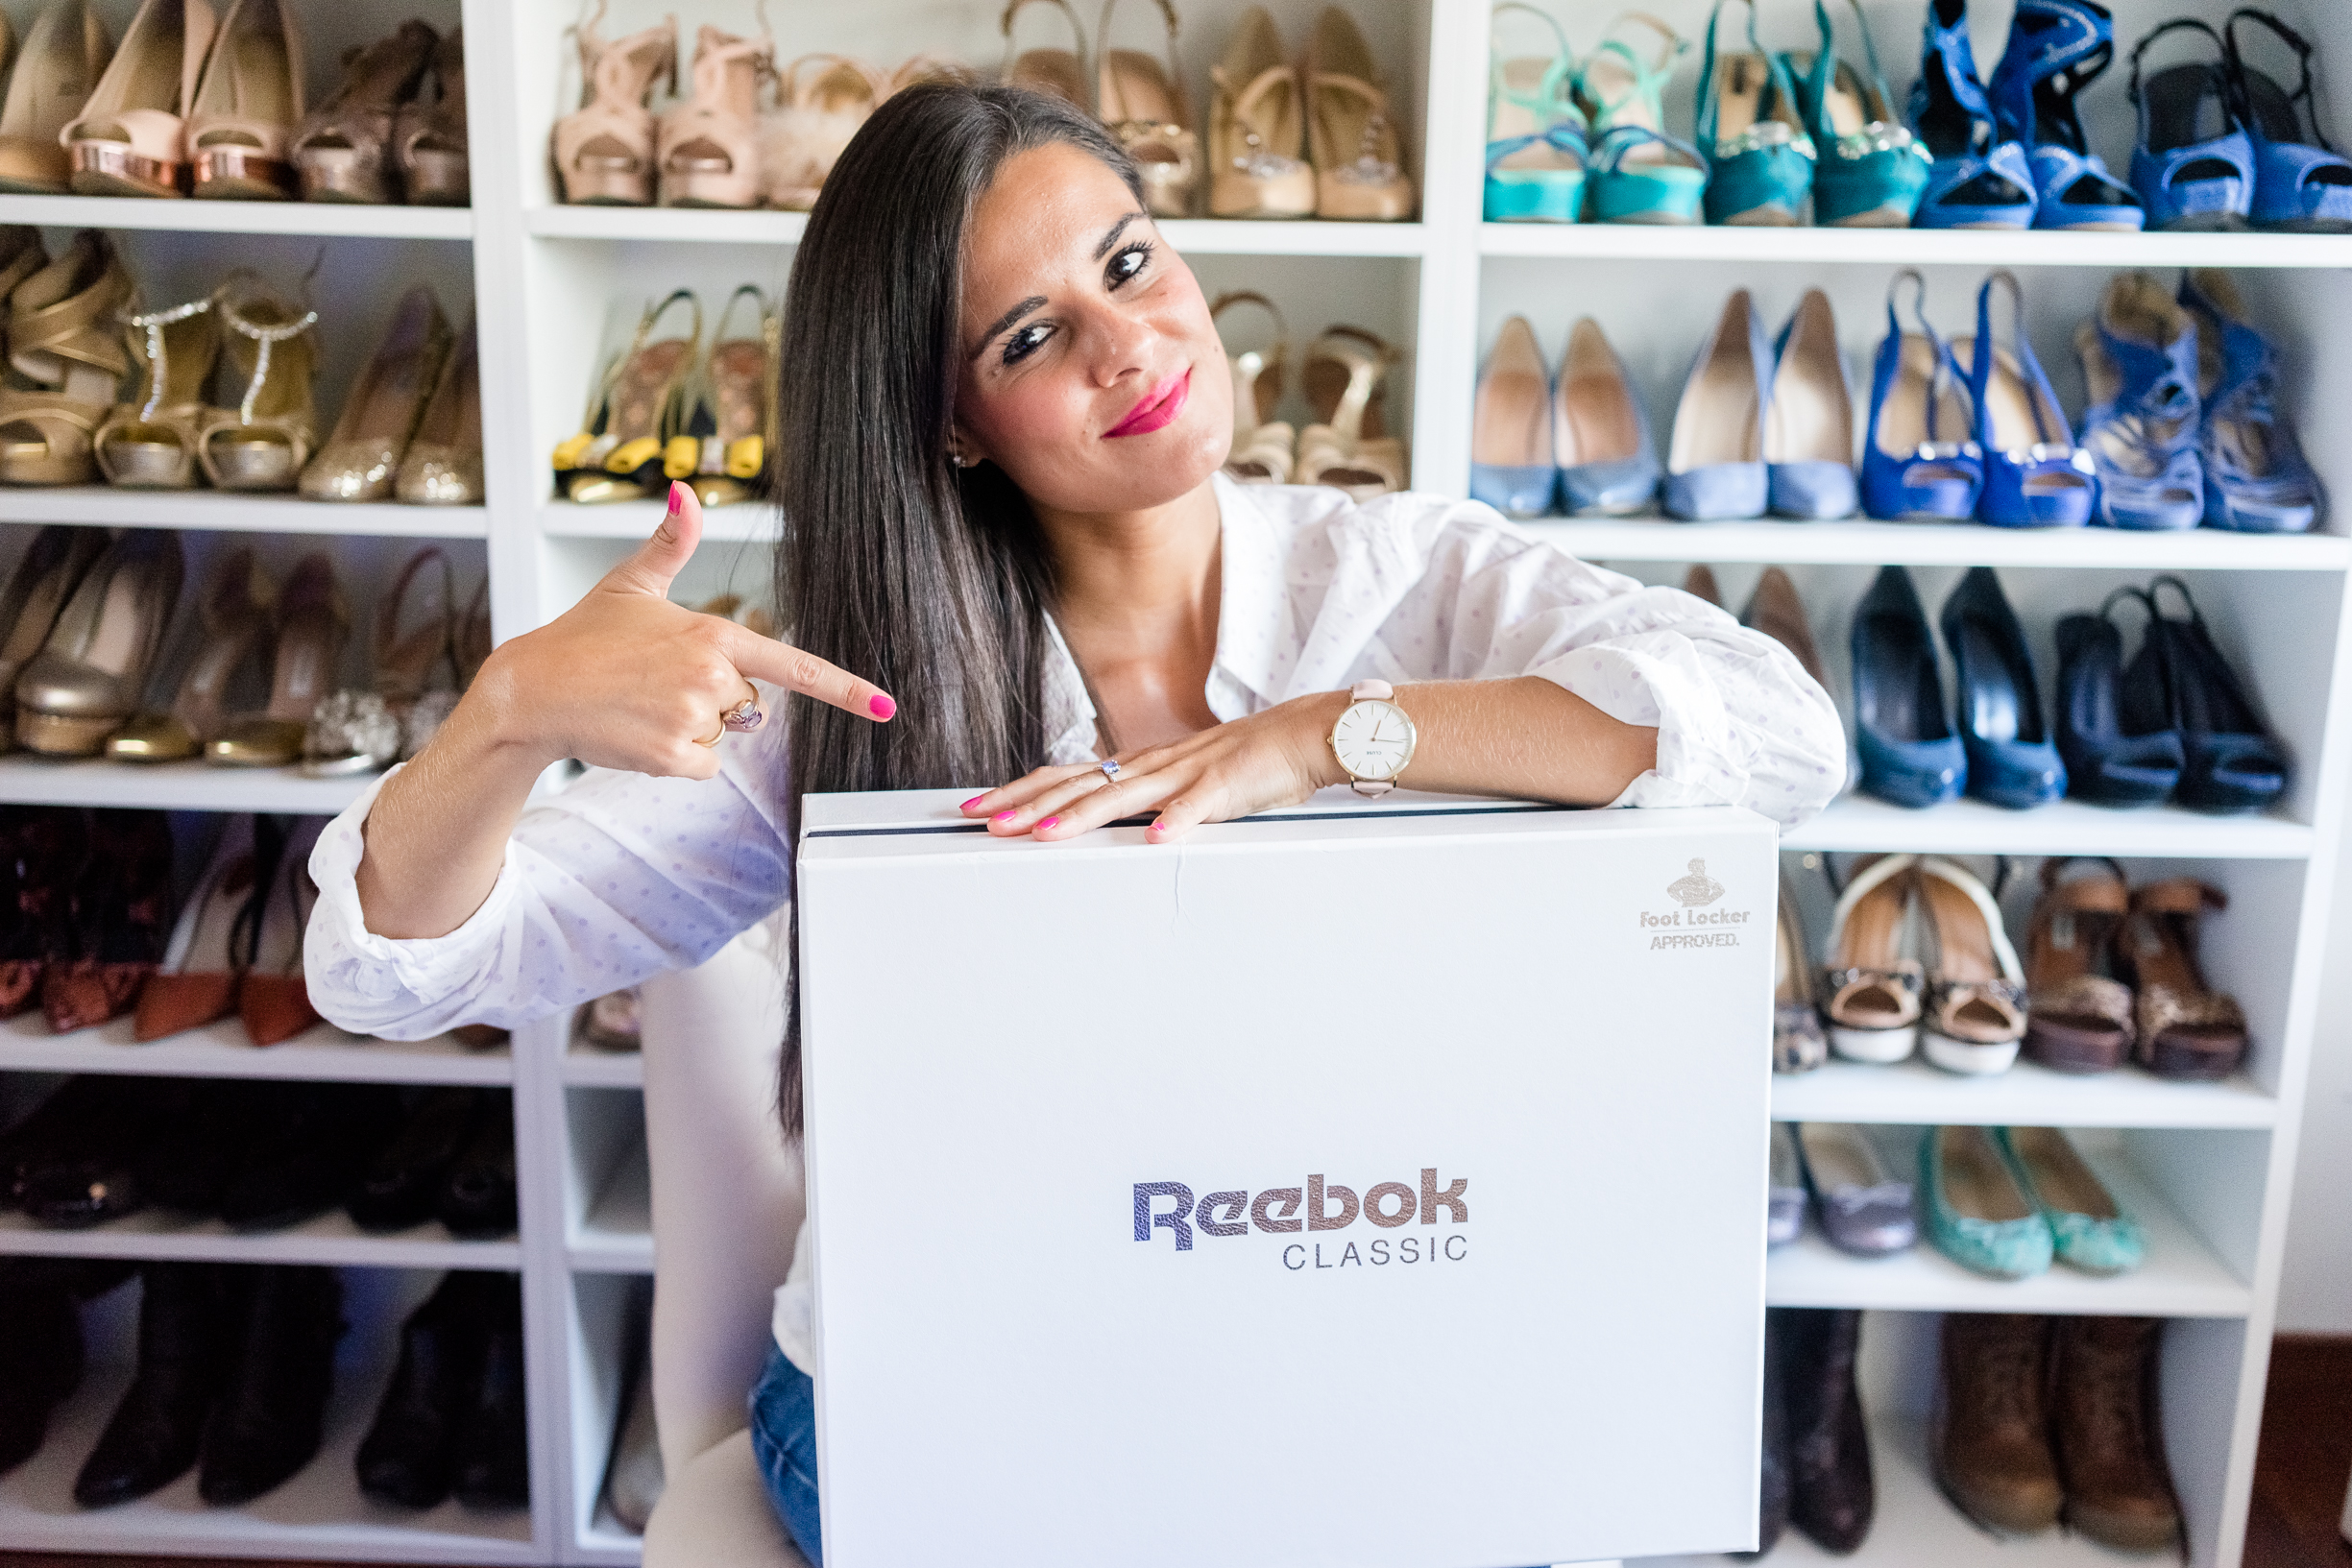 Video Unboxing Deportivas Reebok-19268-crimenesdelamoda